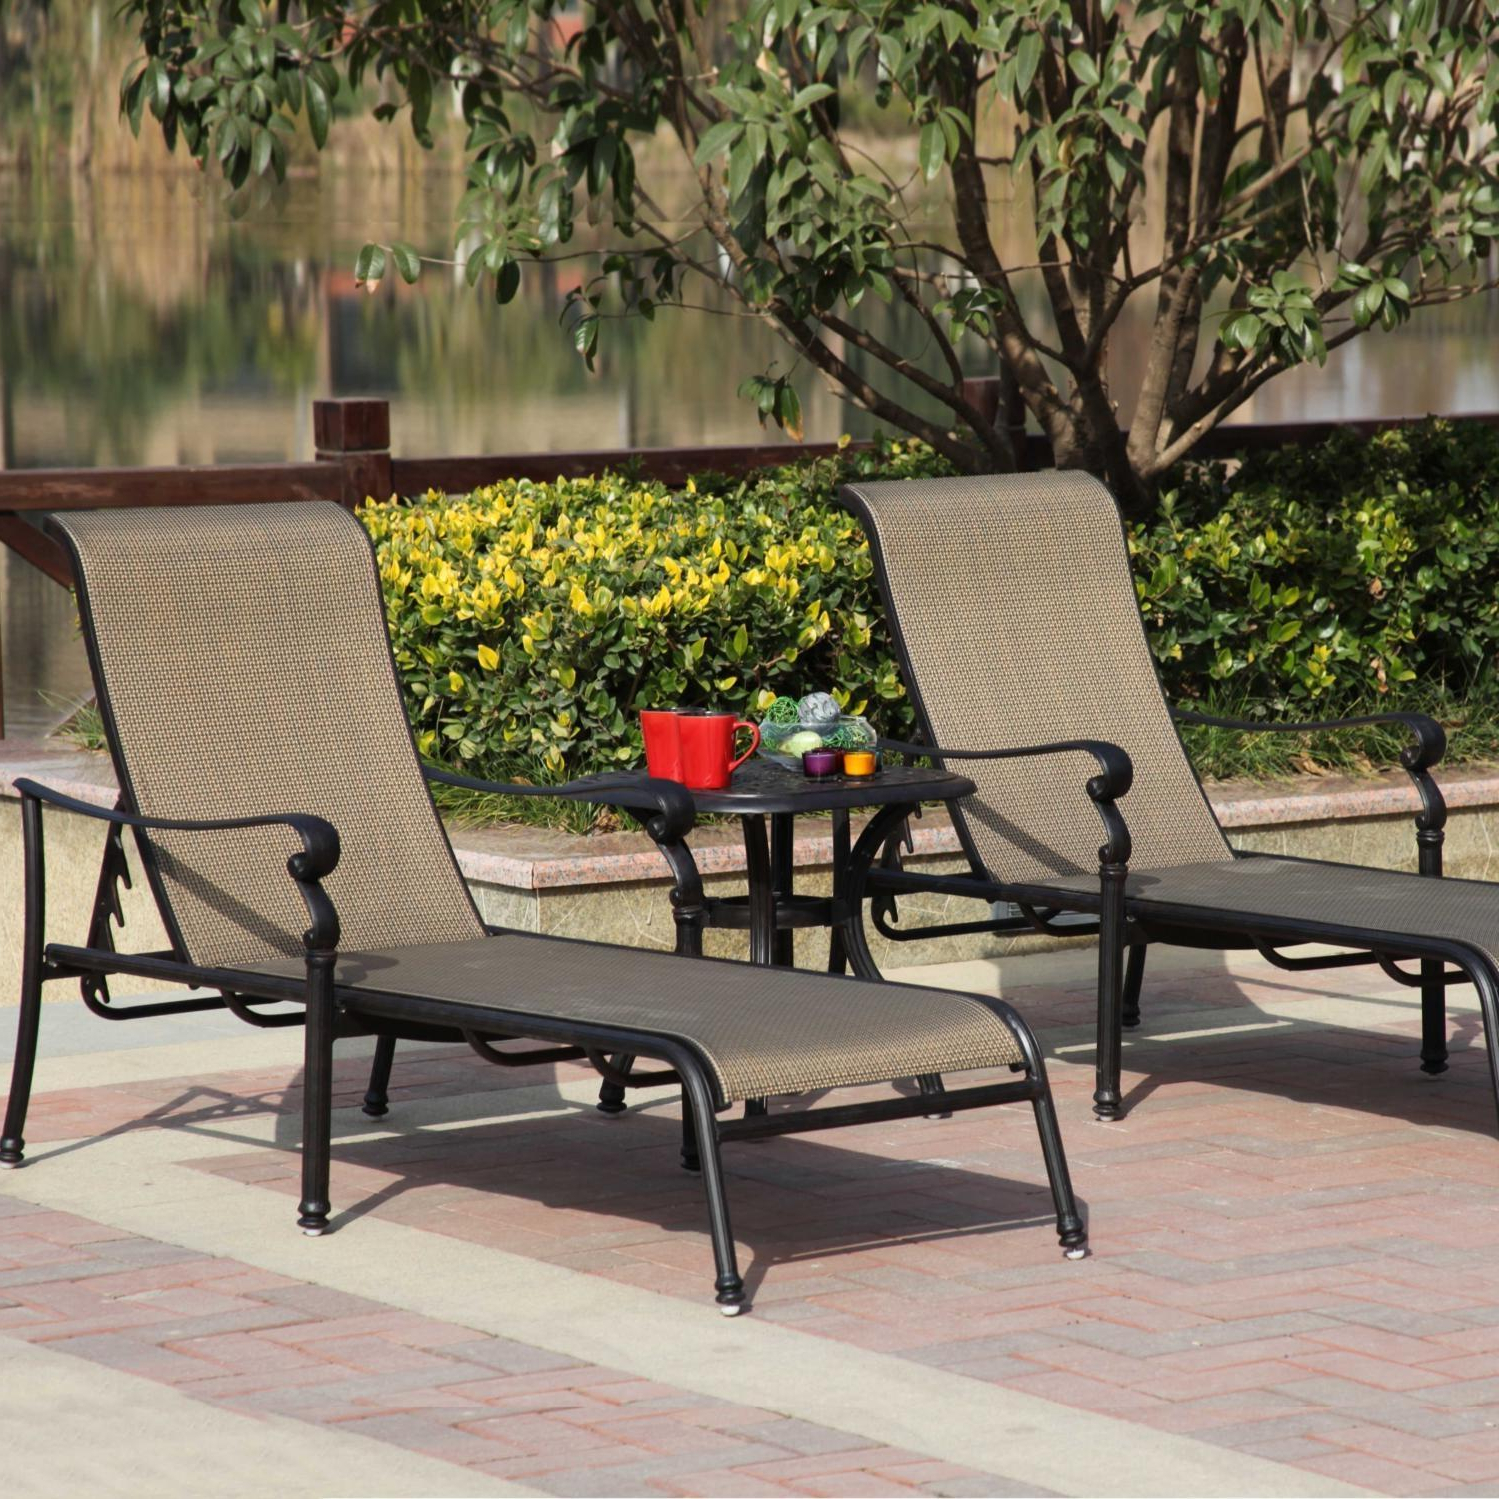 3 Piece Patio Lounger Sets Intended For Most Current Darlee Monterey 3 Piece Sling Patio Chaise Lounge Set (View 5 of 25)